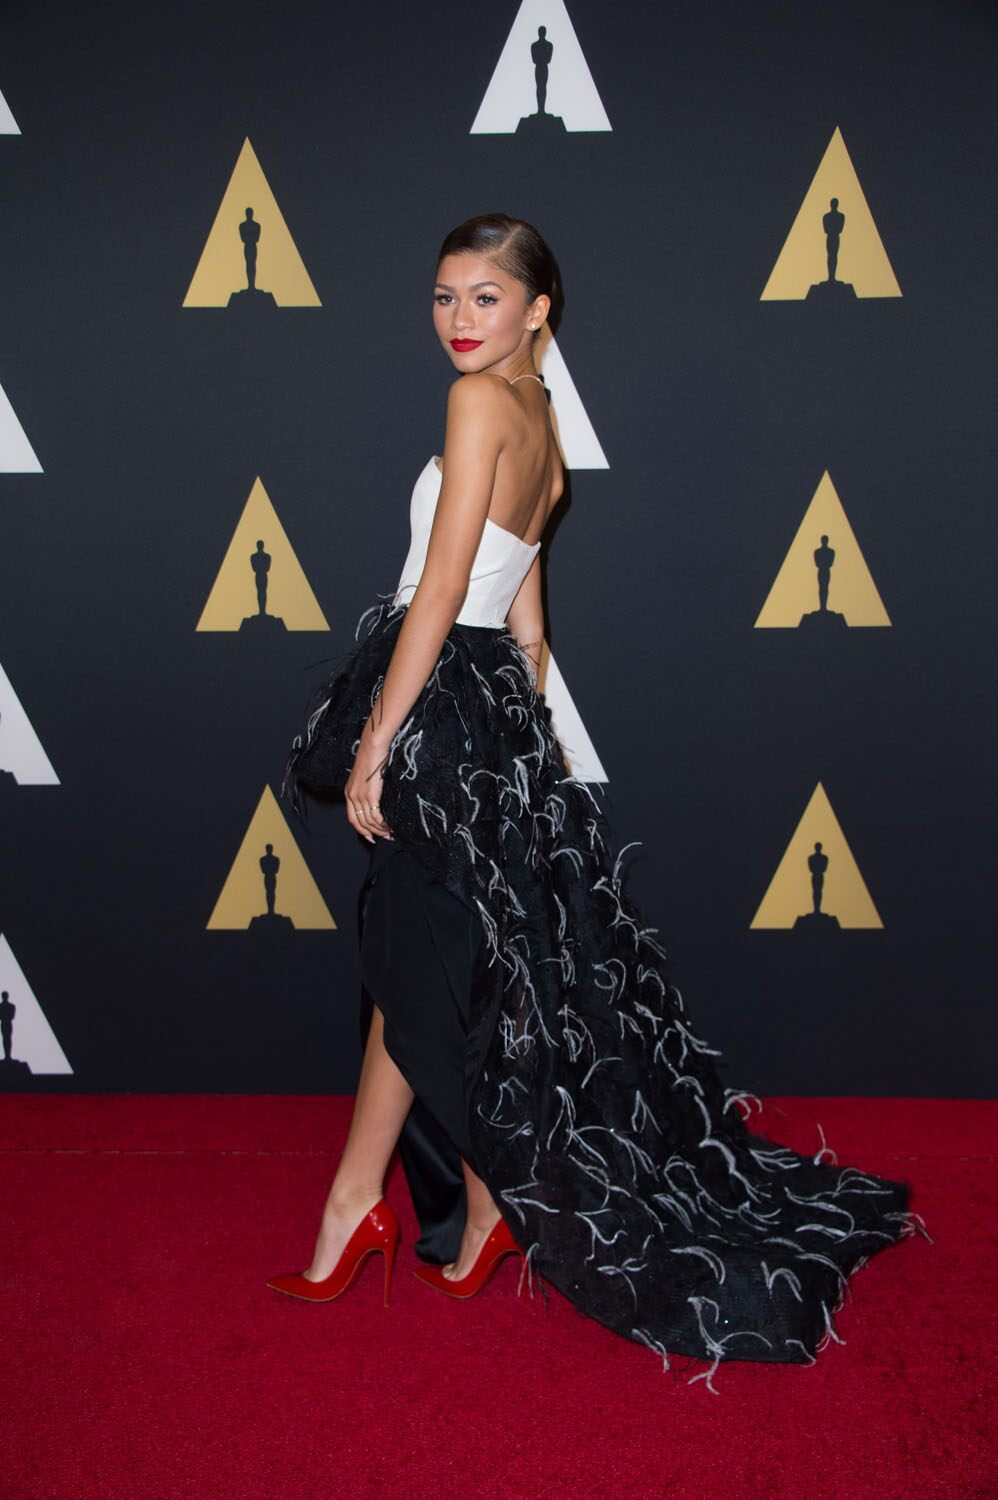 Zendaya at the 6th Annual Governors Awards